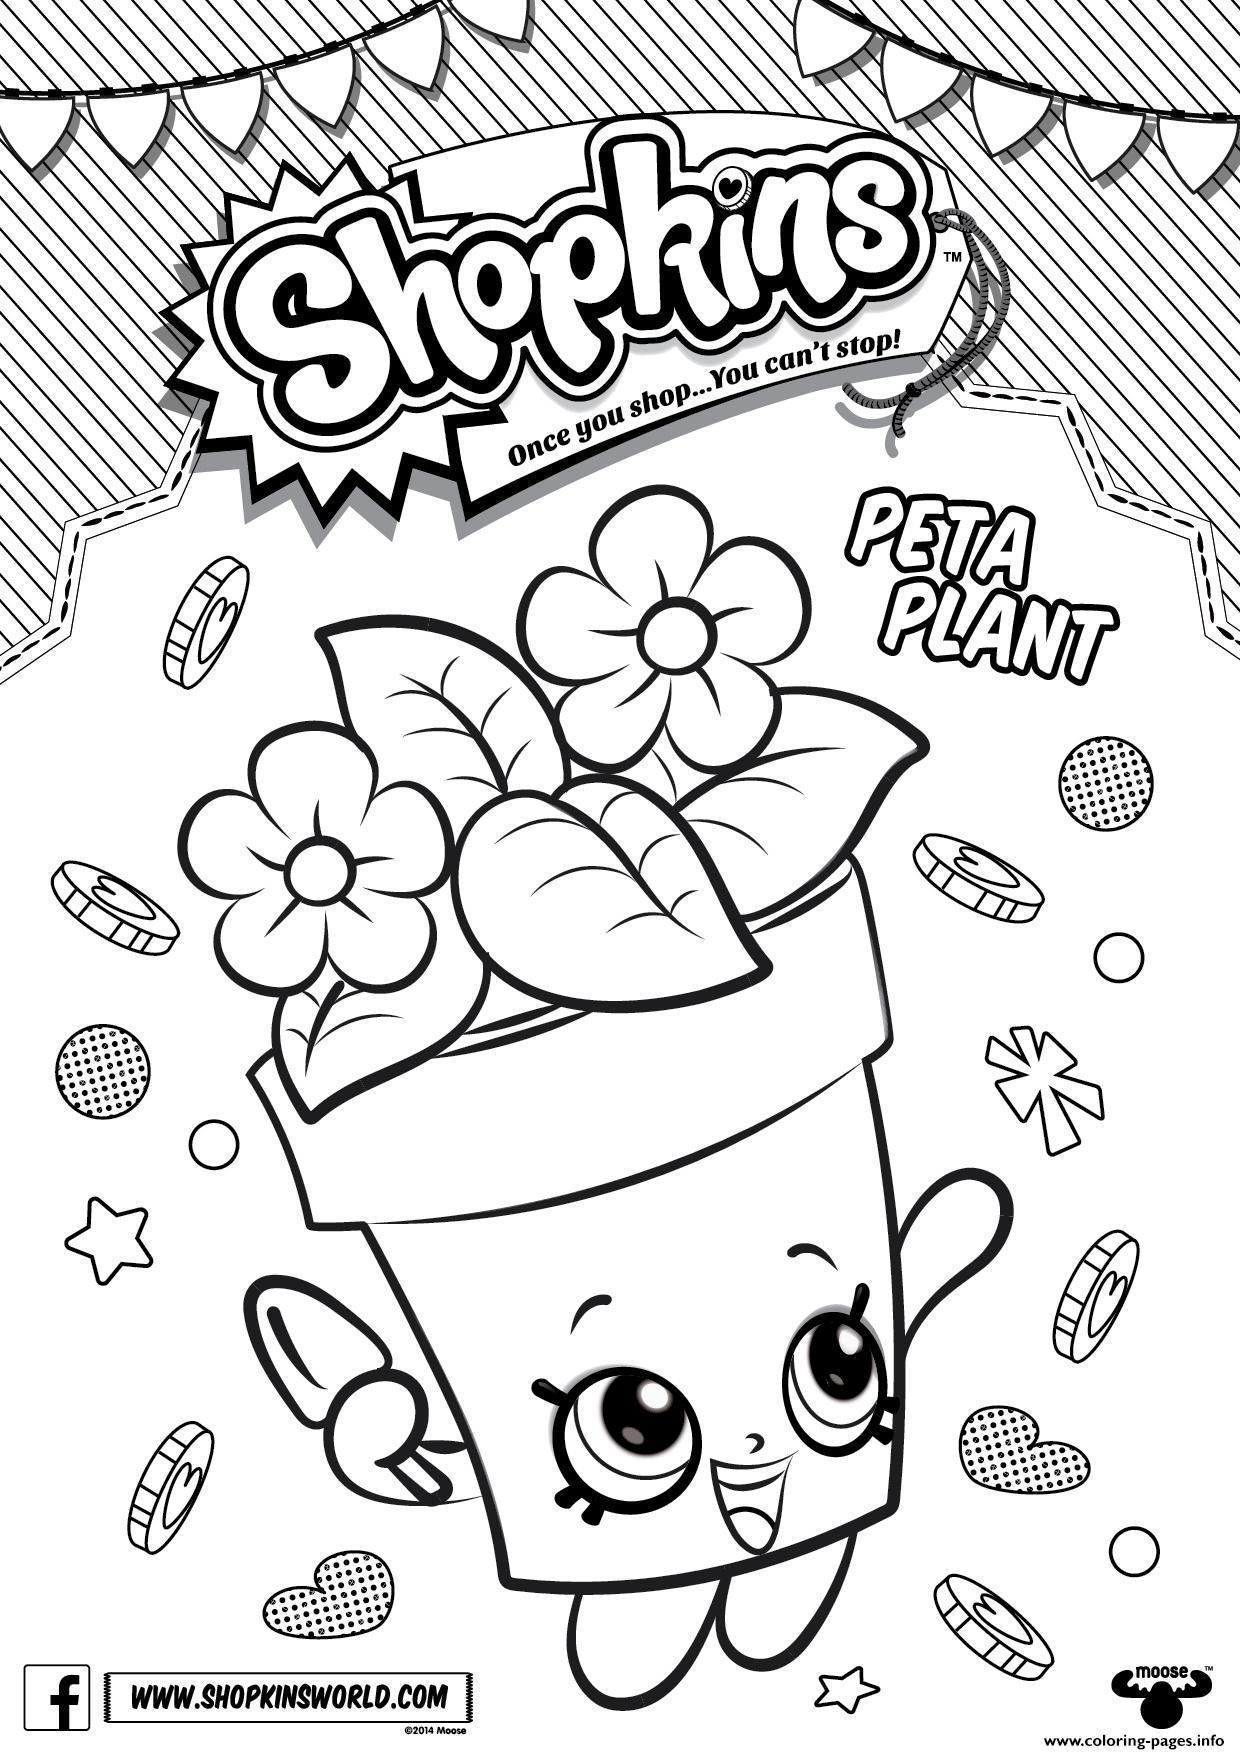 shopkins peta plant Coloring pages Free Printable | color pgs for ...